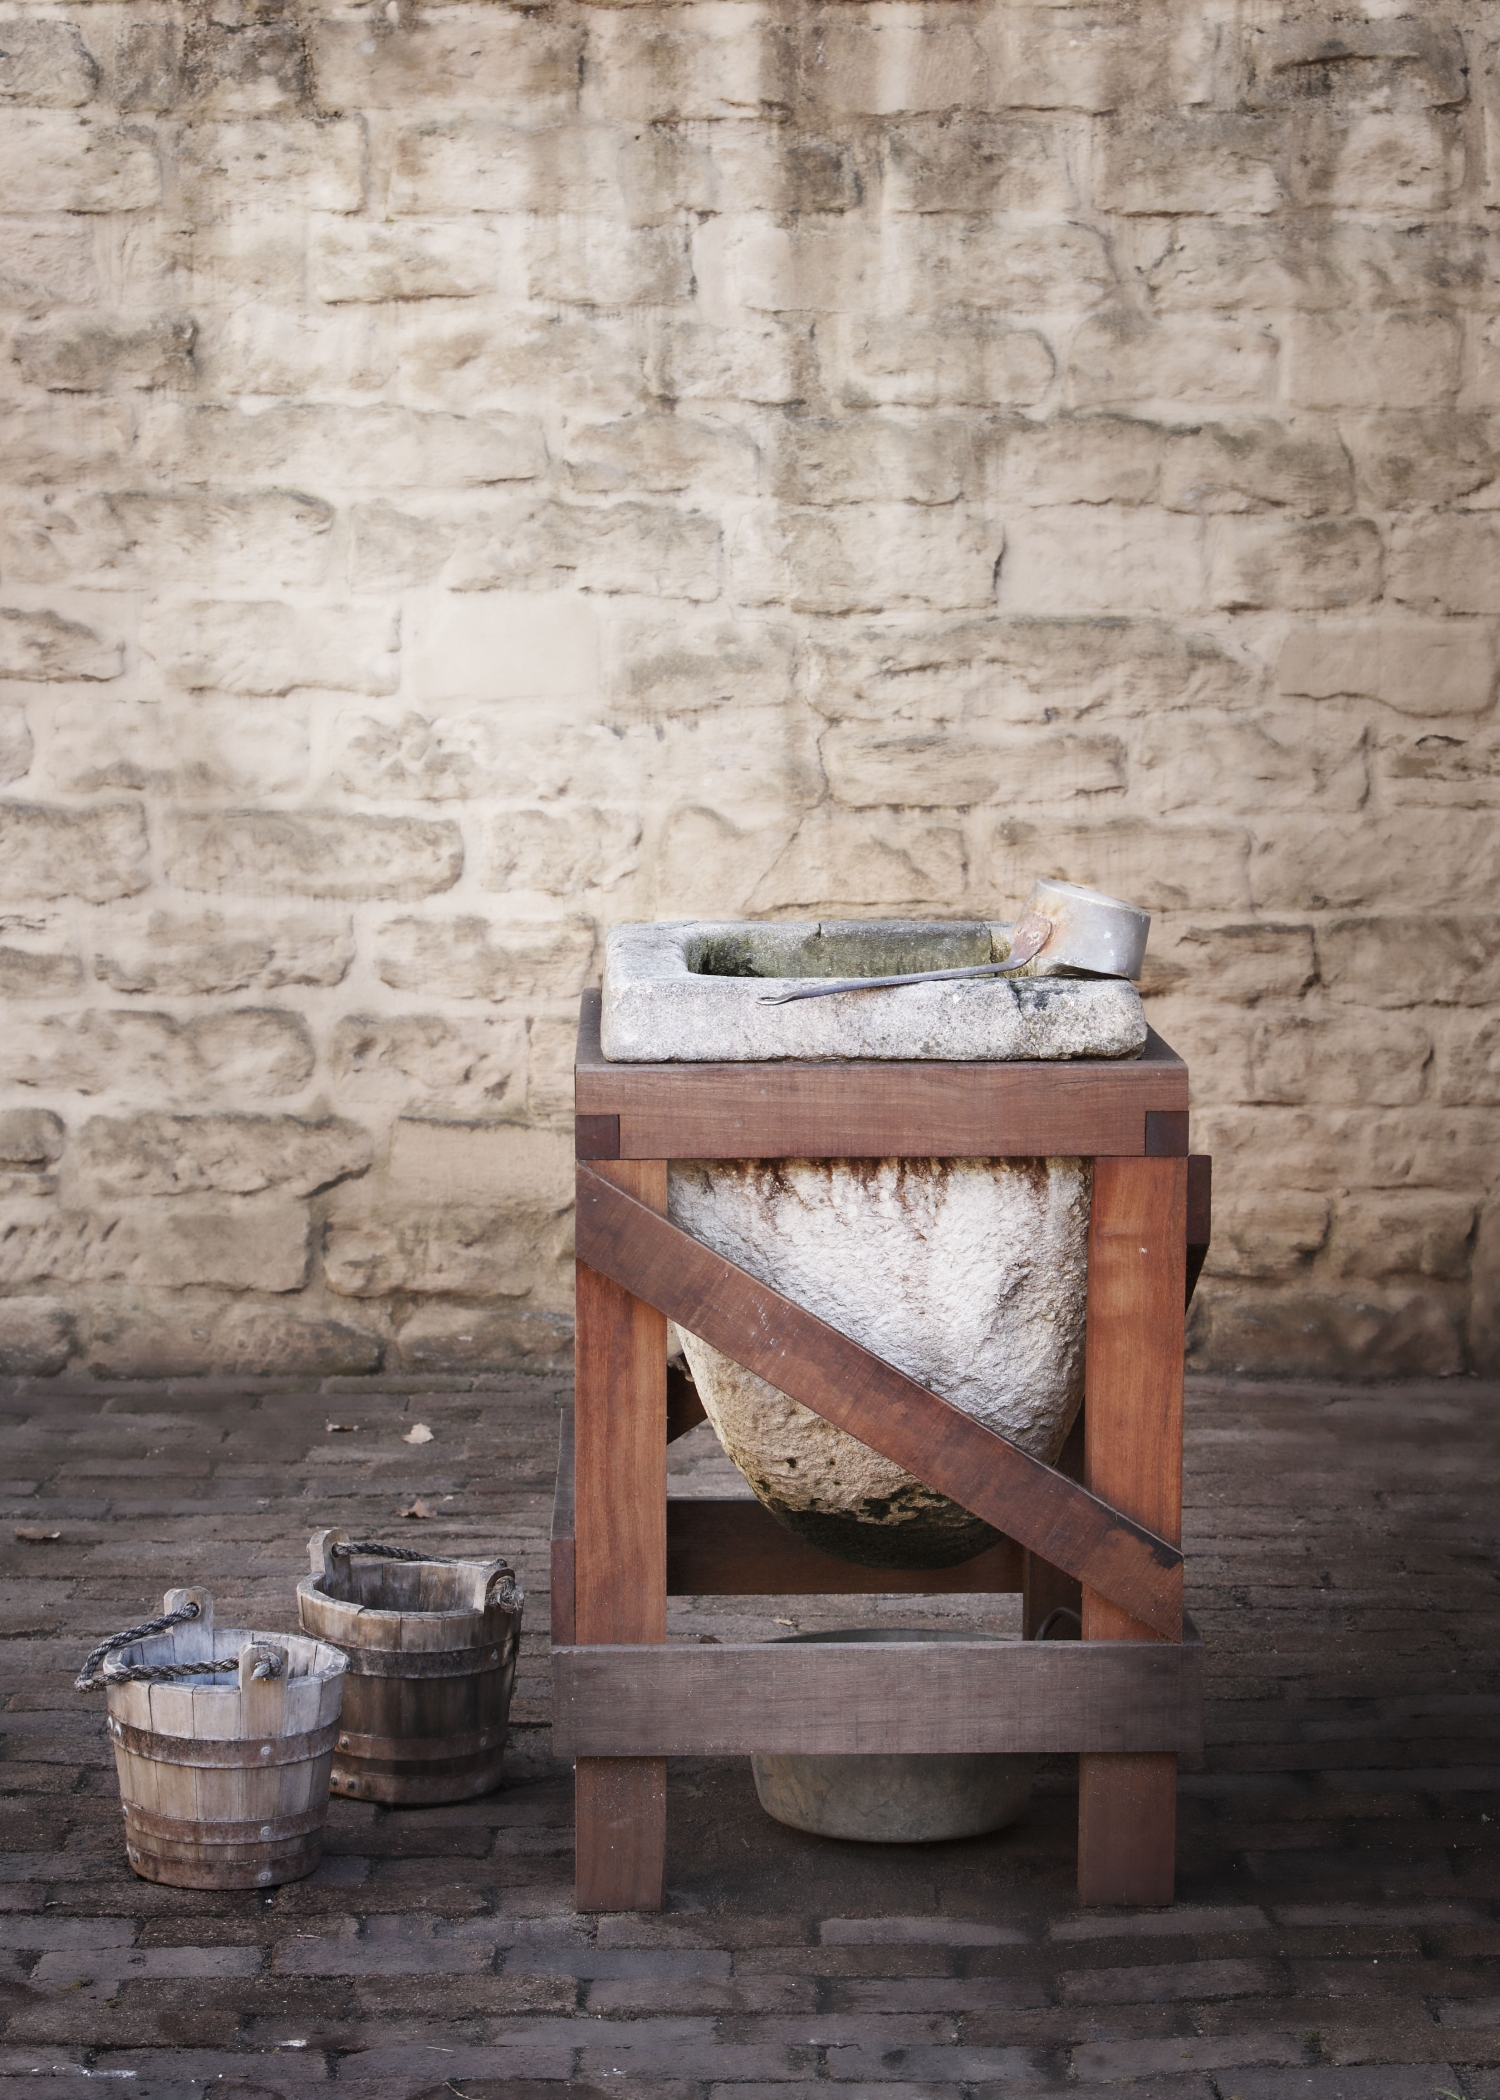 dished out stone water filter resting in timber frame or cradle against a stone wall